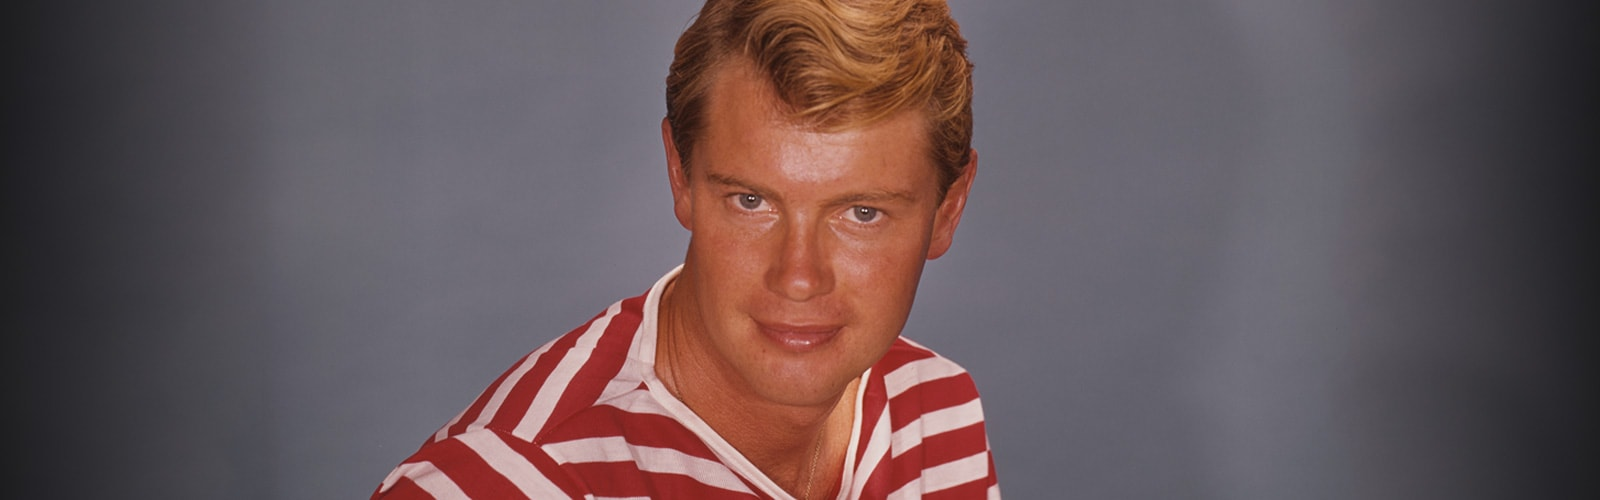 Troy Donahue Background